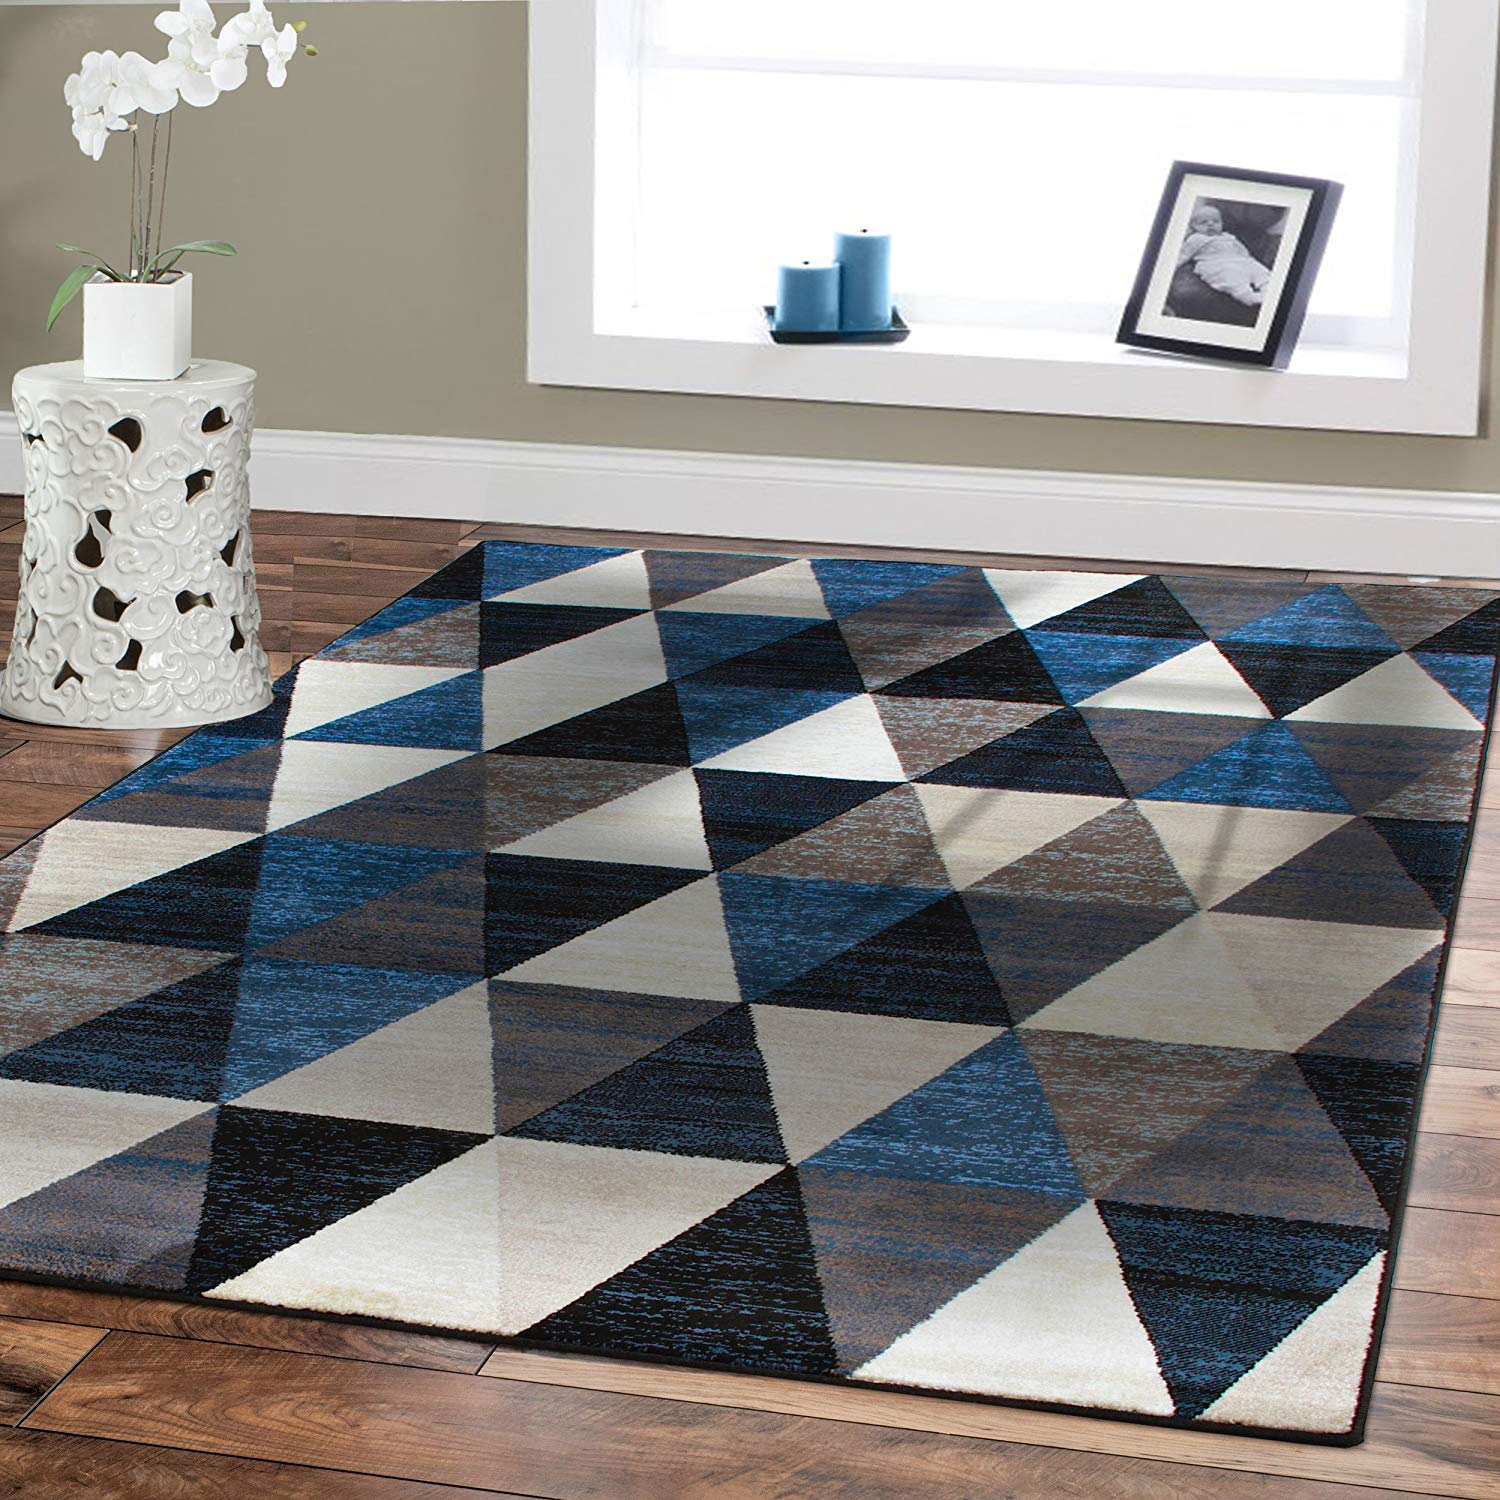 amazon.com: premium large rugs 8x11 modern rugs for brown sofa blue rugs QVDOCSU